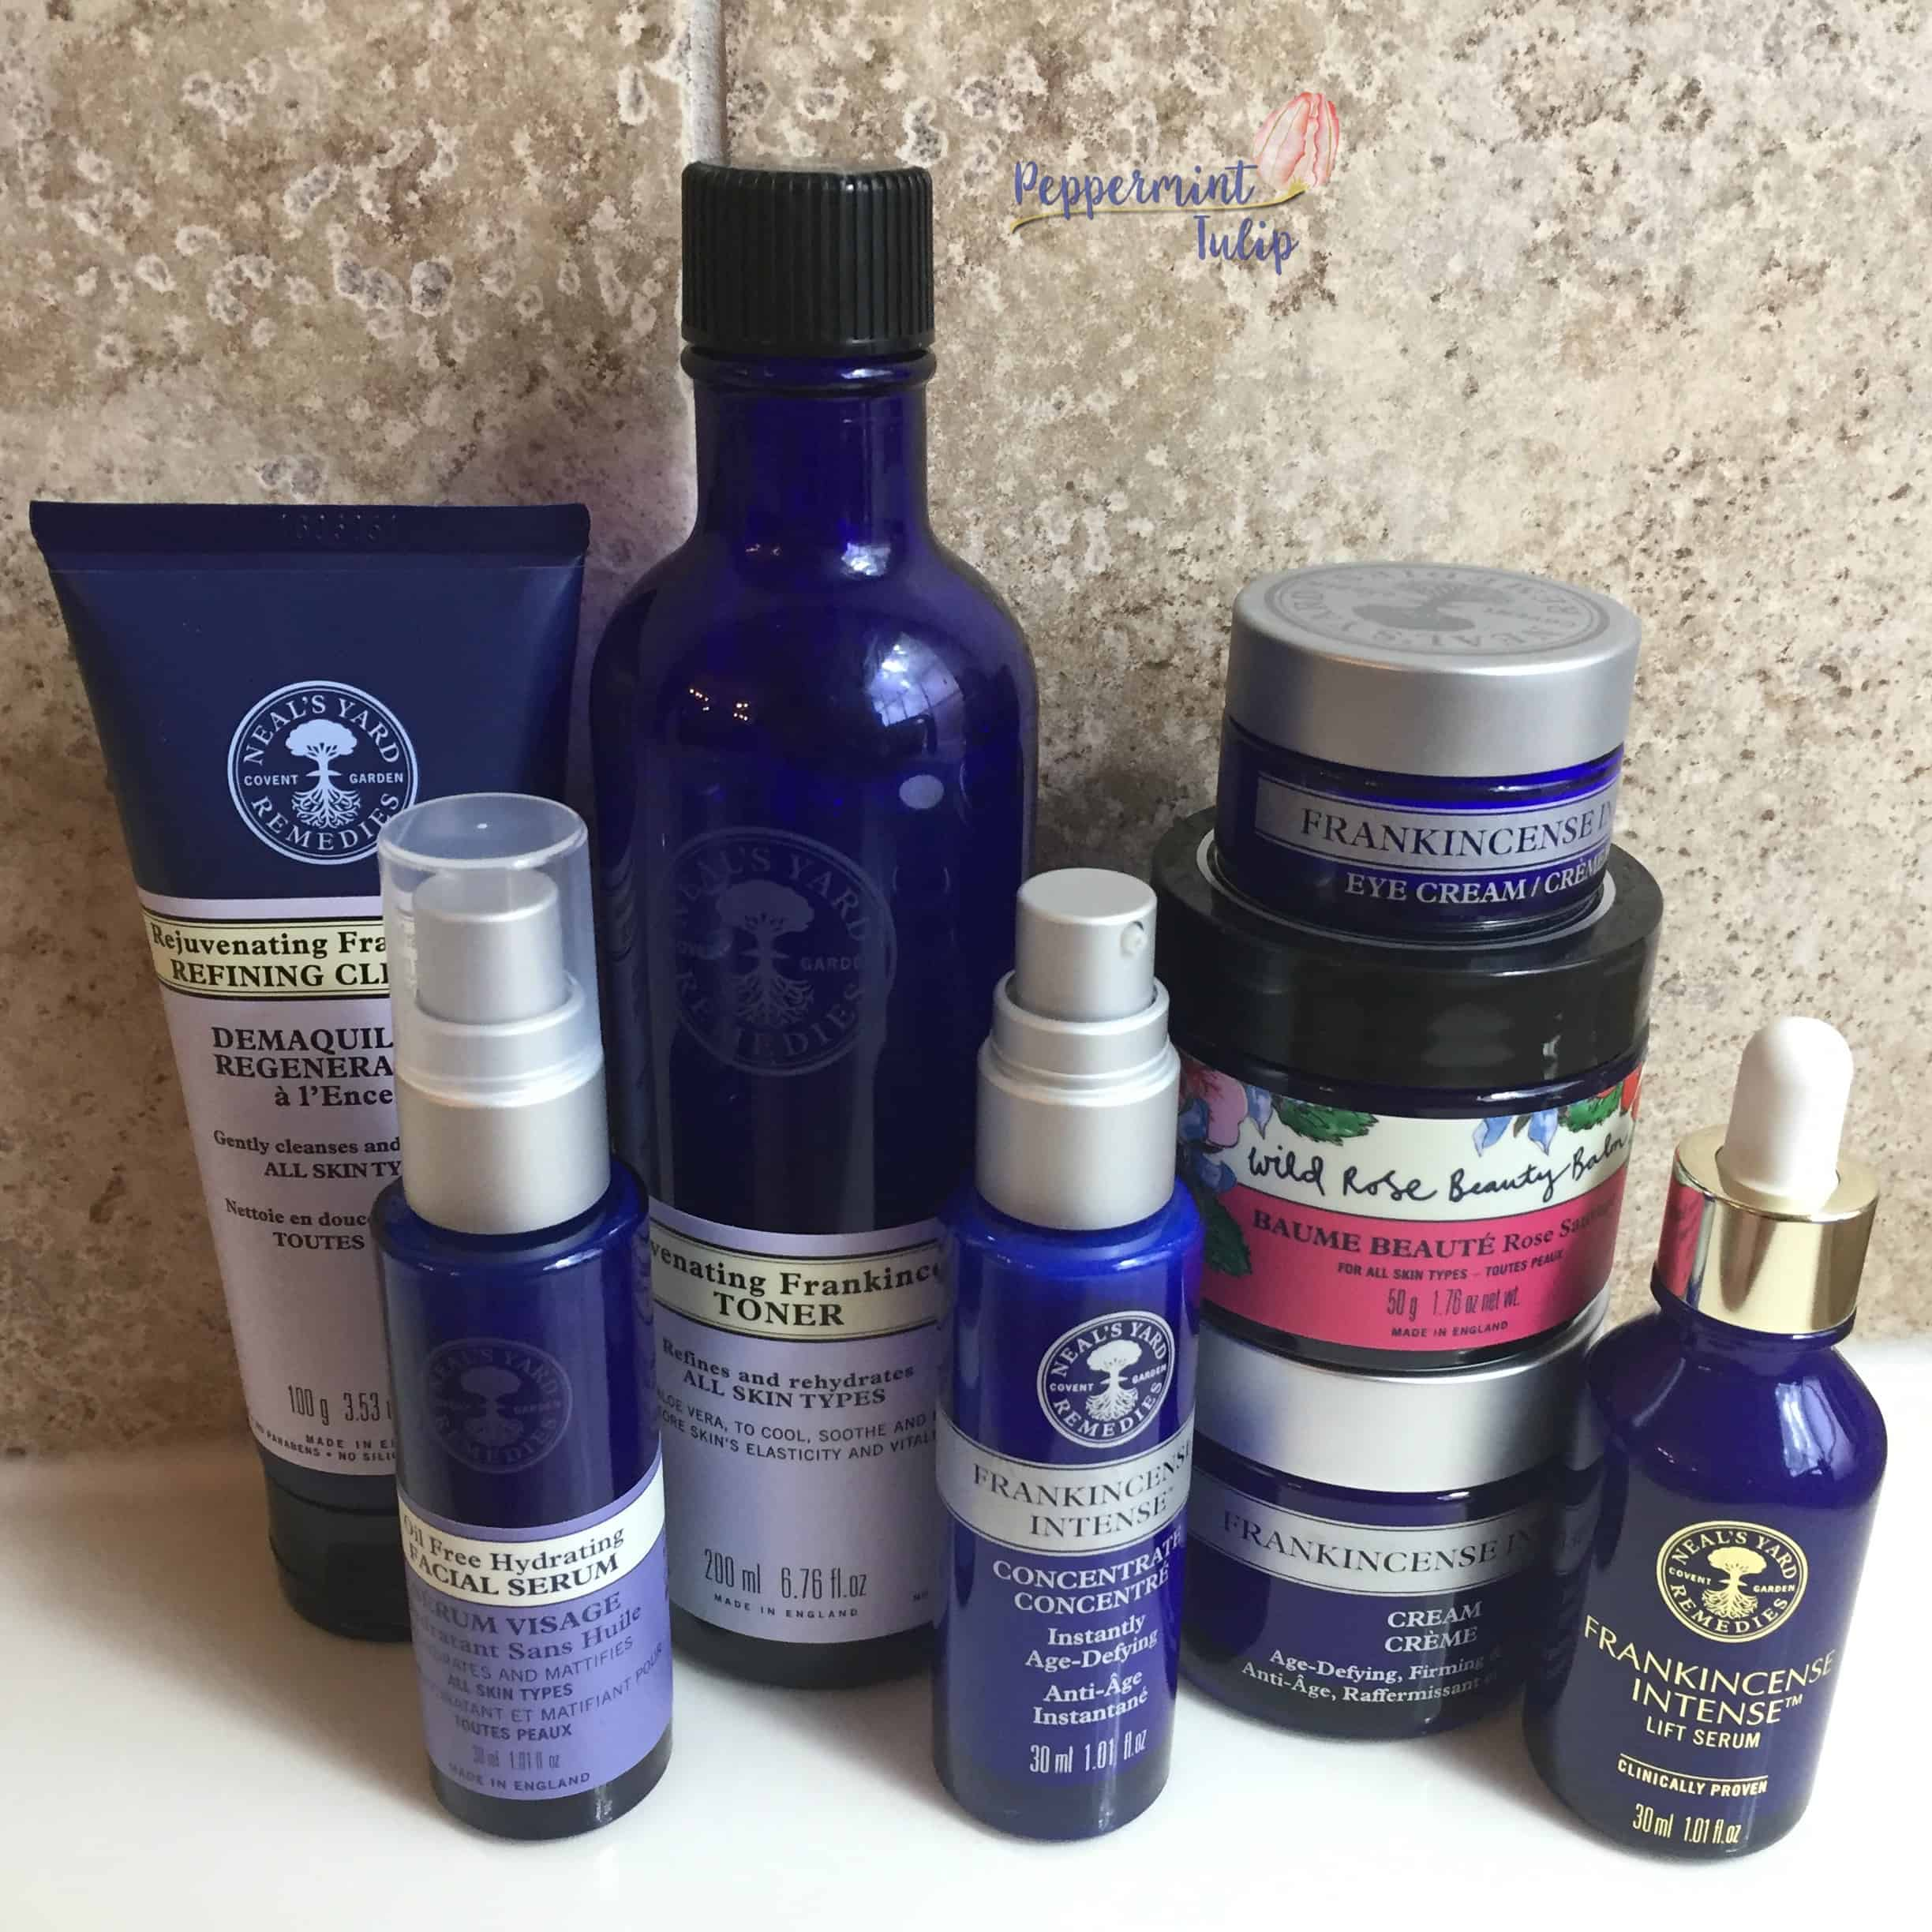 These are the 8 products available in the partnership between NYR Organic and Credo stores. | Neal's Yard Remedies. Read PeppermintTulip.com to find the latest info.